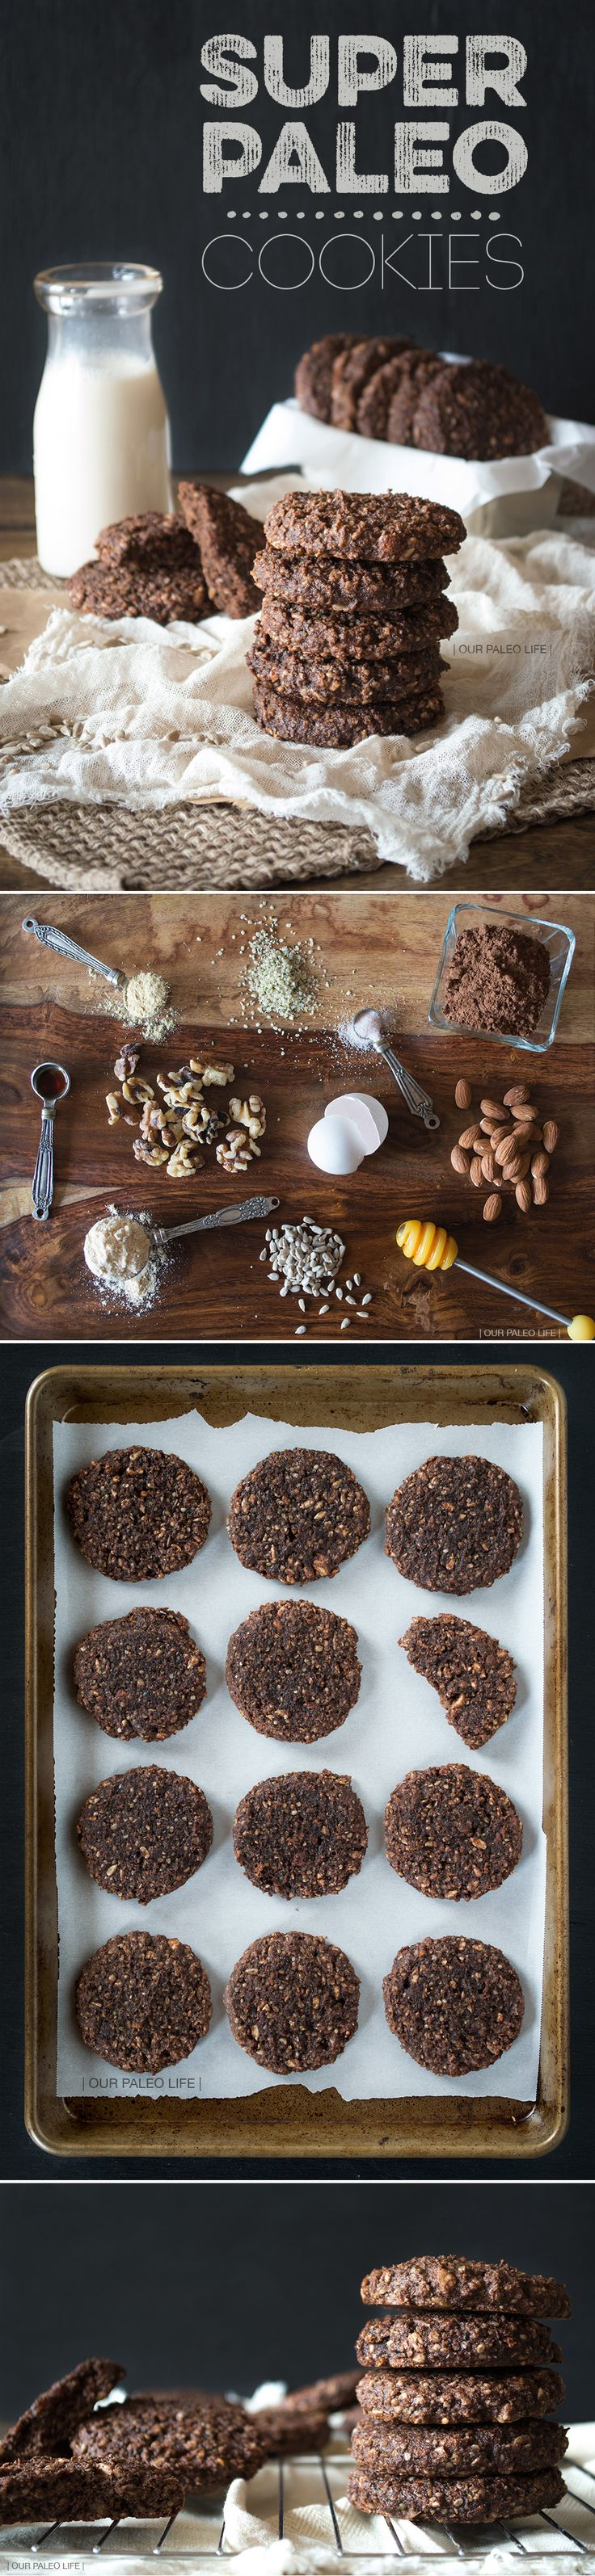 Super Paleo Cookies: chocolatey, crunchy, chewy, packed with good, energy boosting ingredients.